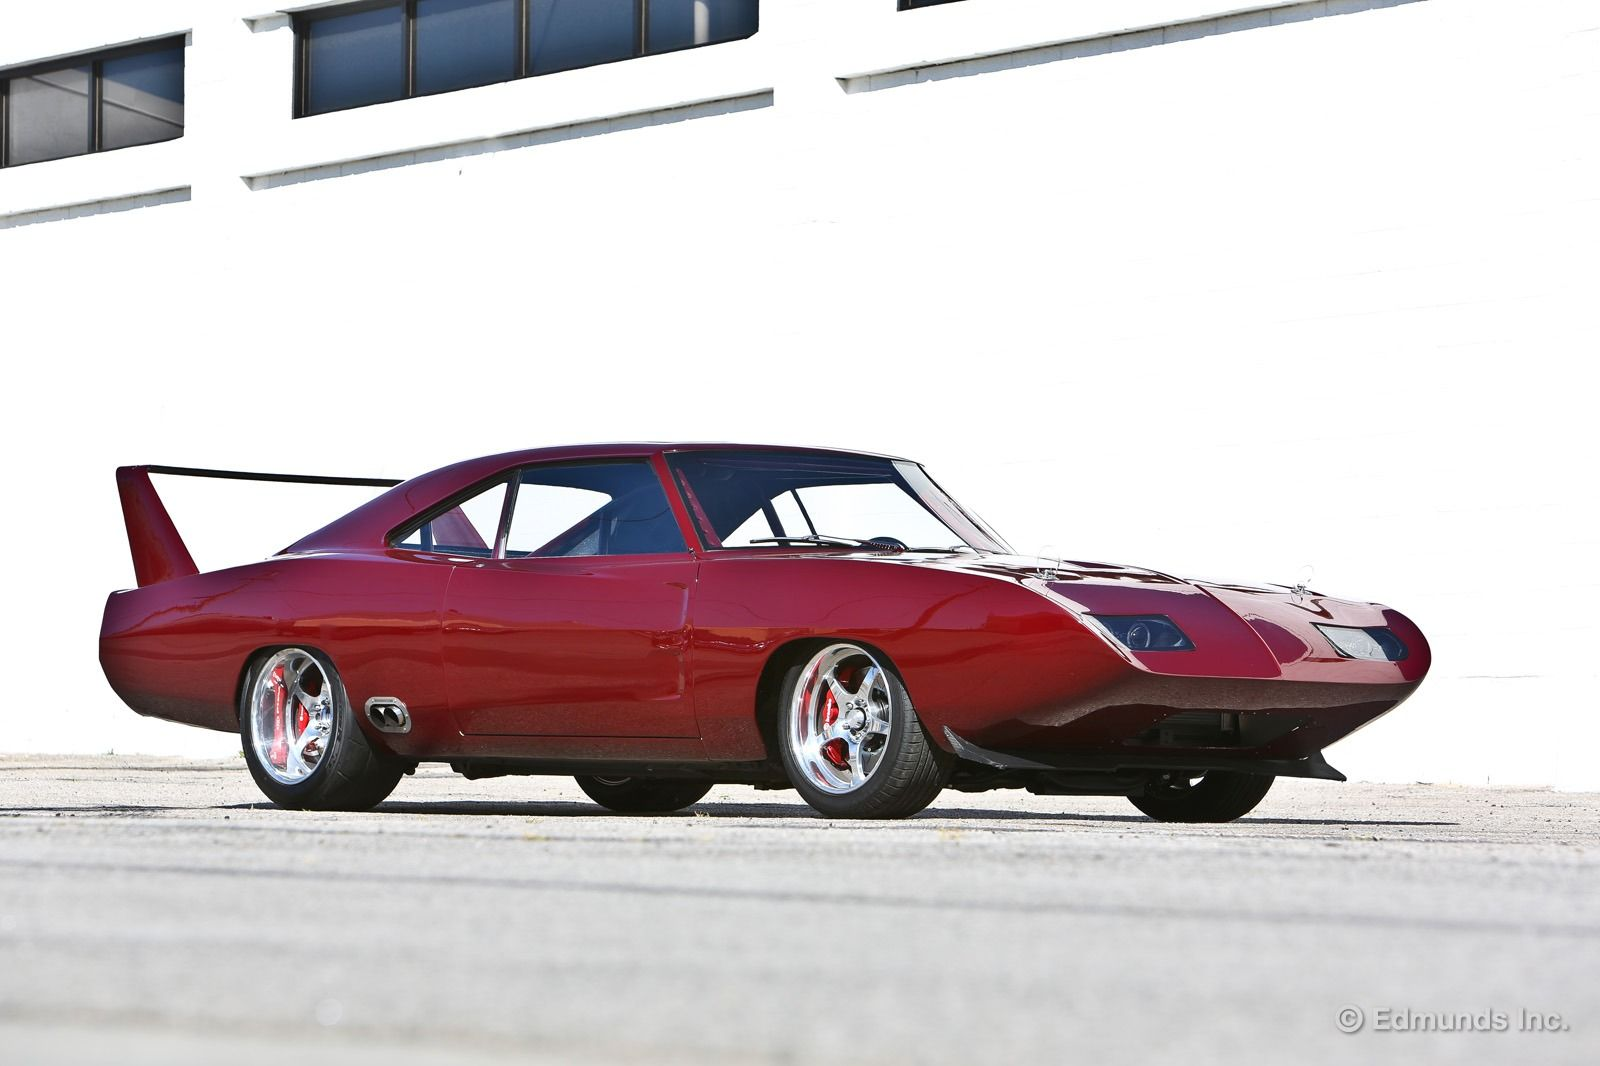 Fast & Furious 6 Cars: 1969 Dodge Charger Daytona ...